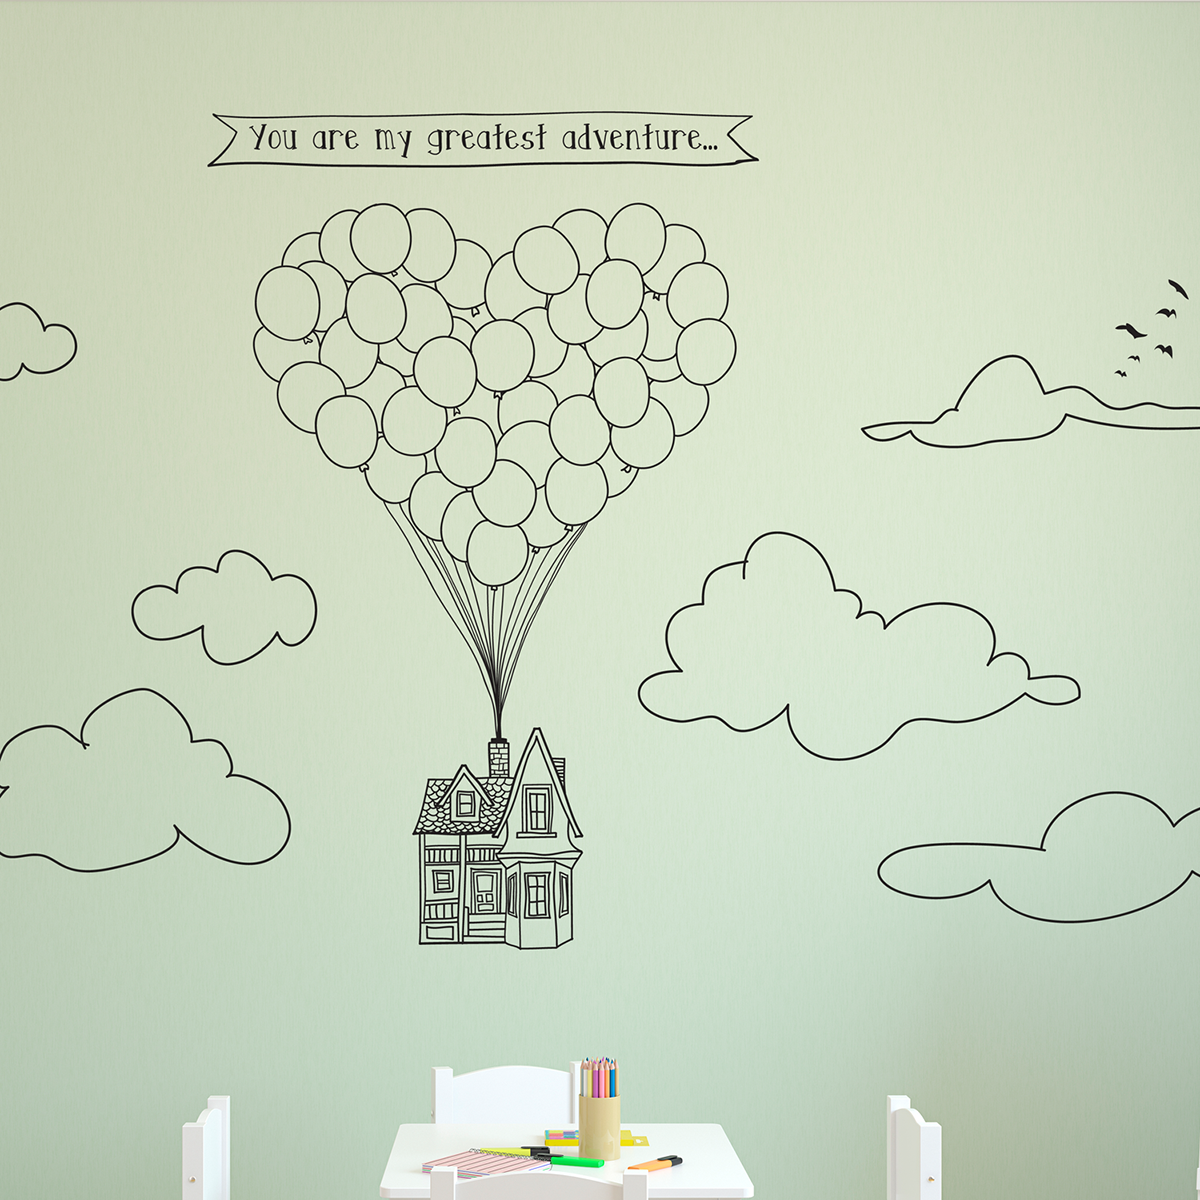 """Up, up, and away! This adorable decal is for the adventurous soul and is sure to brighten any room. It's a perfect gift for children, or just about any fan of the Pixar film. This decal comes with a banner quote (""""You are my greatest adventure..."""") and a pack of doodled accessories (6 clouds + tiny flock of birds) to complete the miniature scene! Each item is a separate piece, so that you can arrange the scene to perfectly fit your space! Dimensions (also available on fourth image tab): Balloon"""